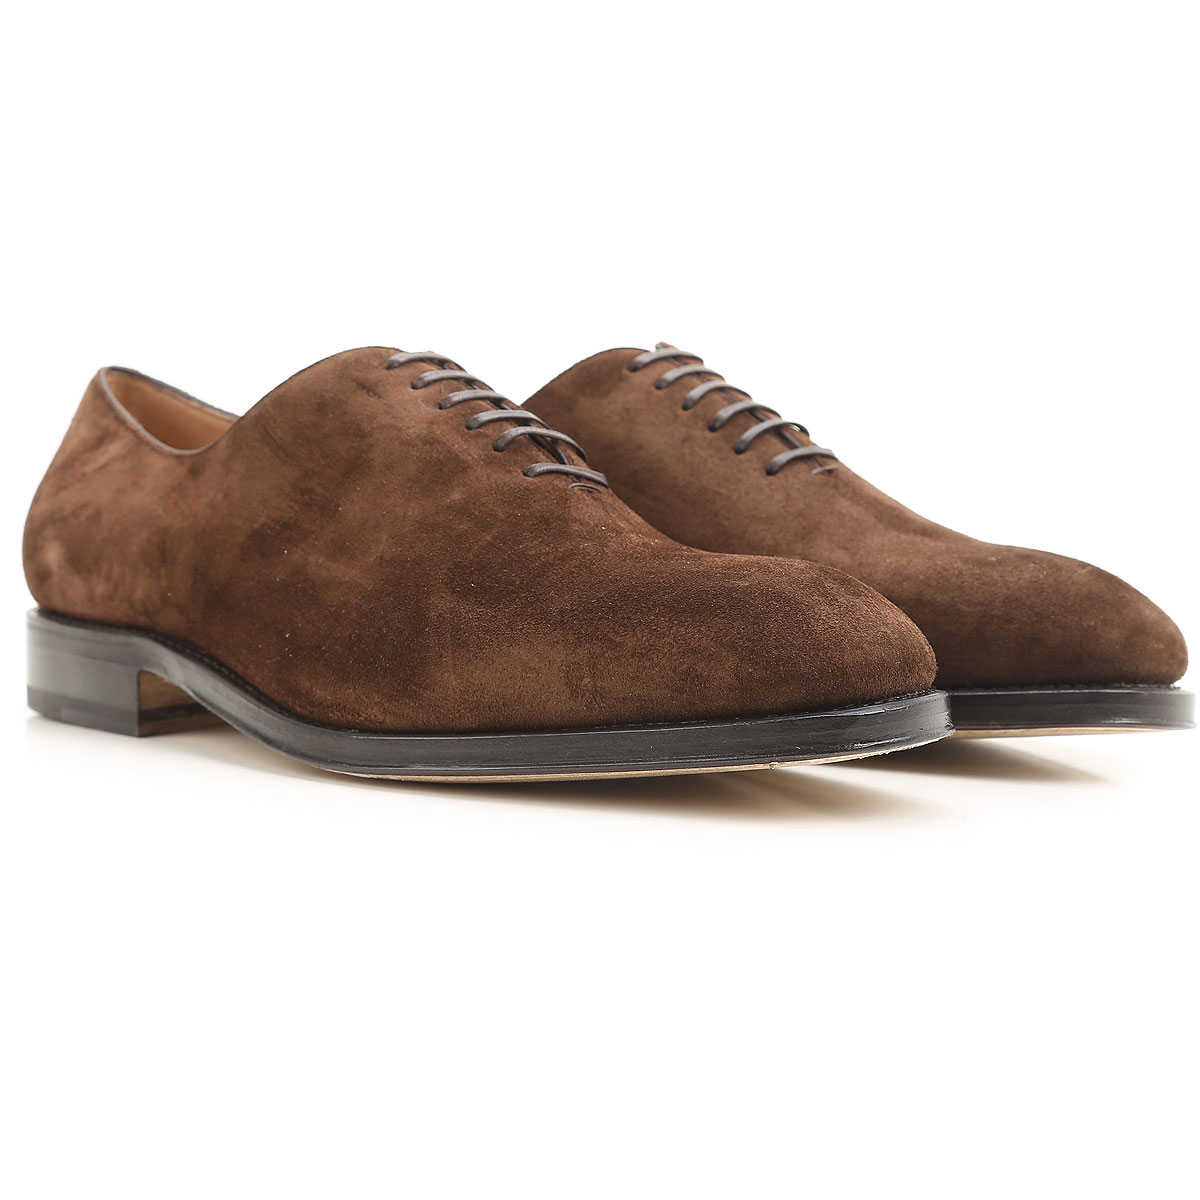 Salvatore Ferragamo Lace Up Shoes for Men Oxfords Derbies and Brogues On Sale in Outlet USA - GOOFASH